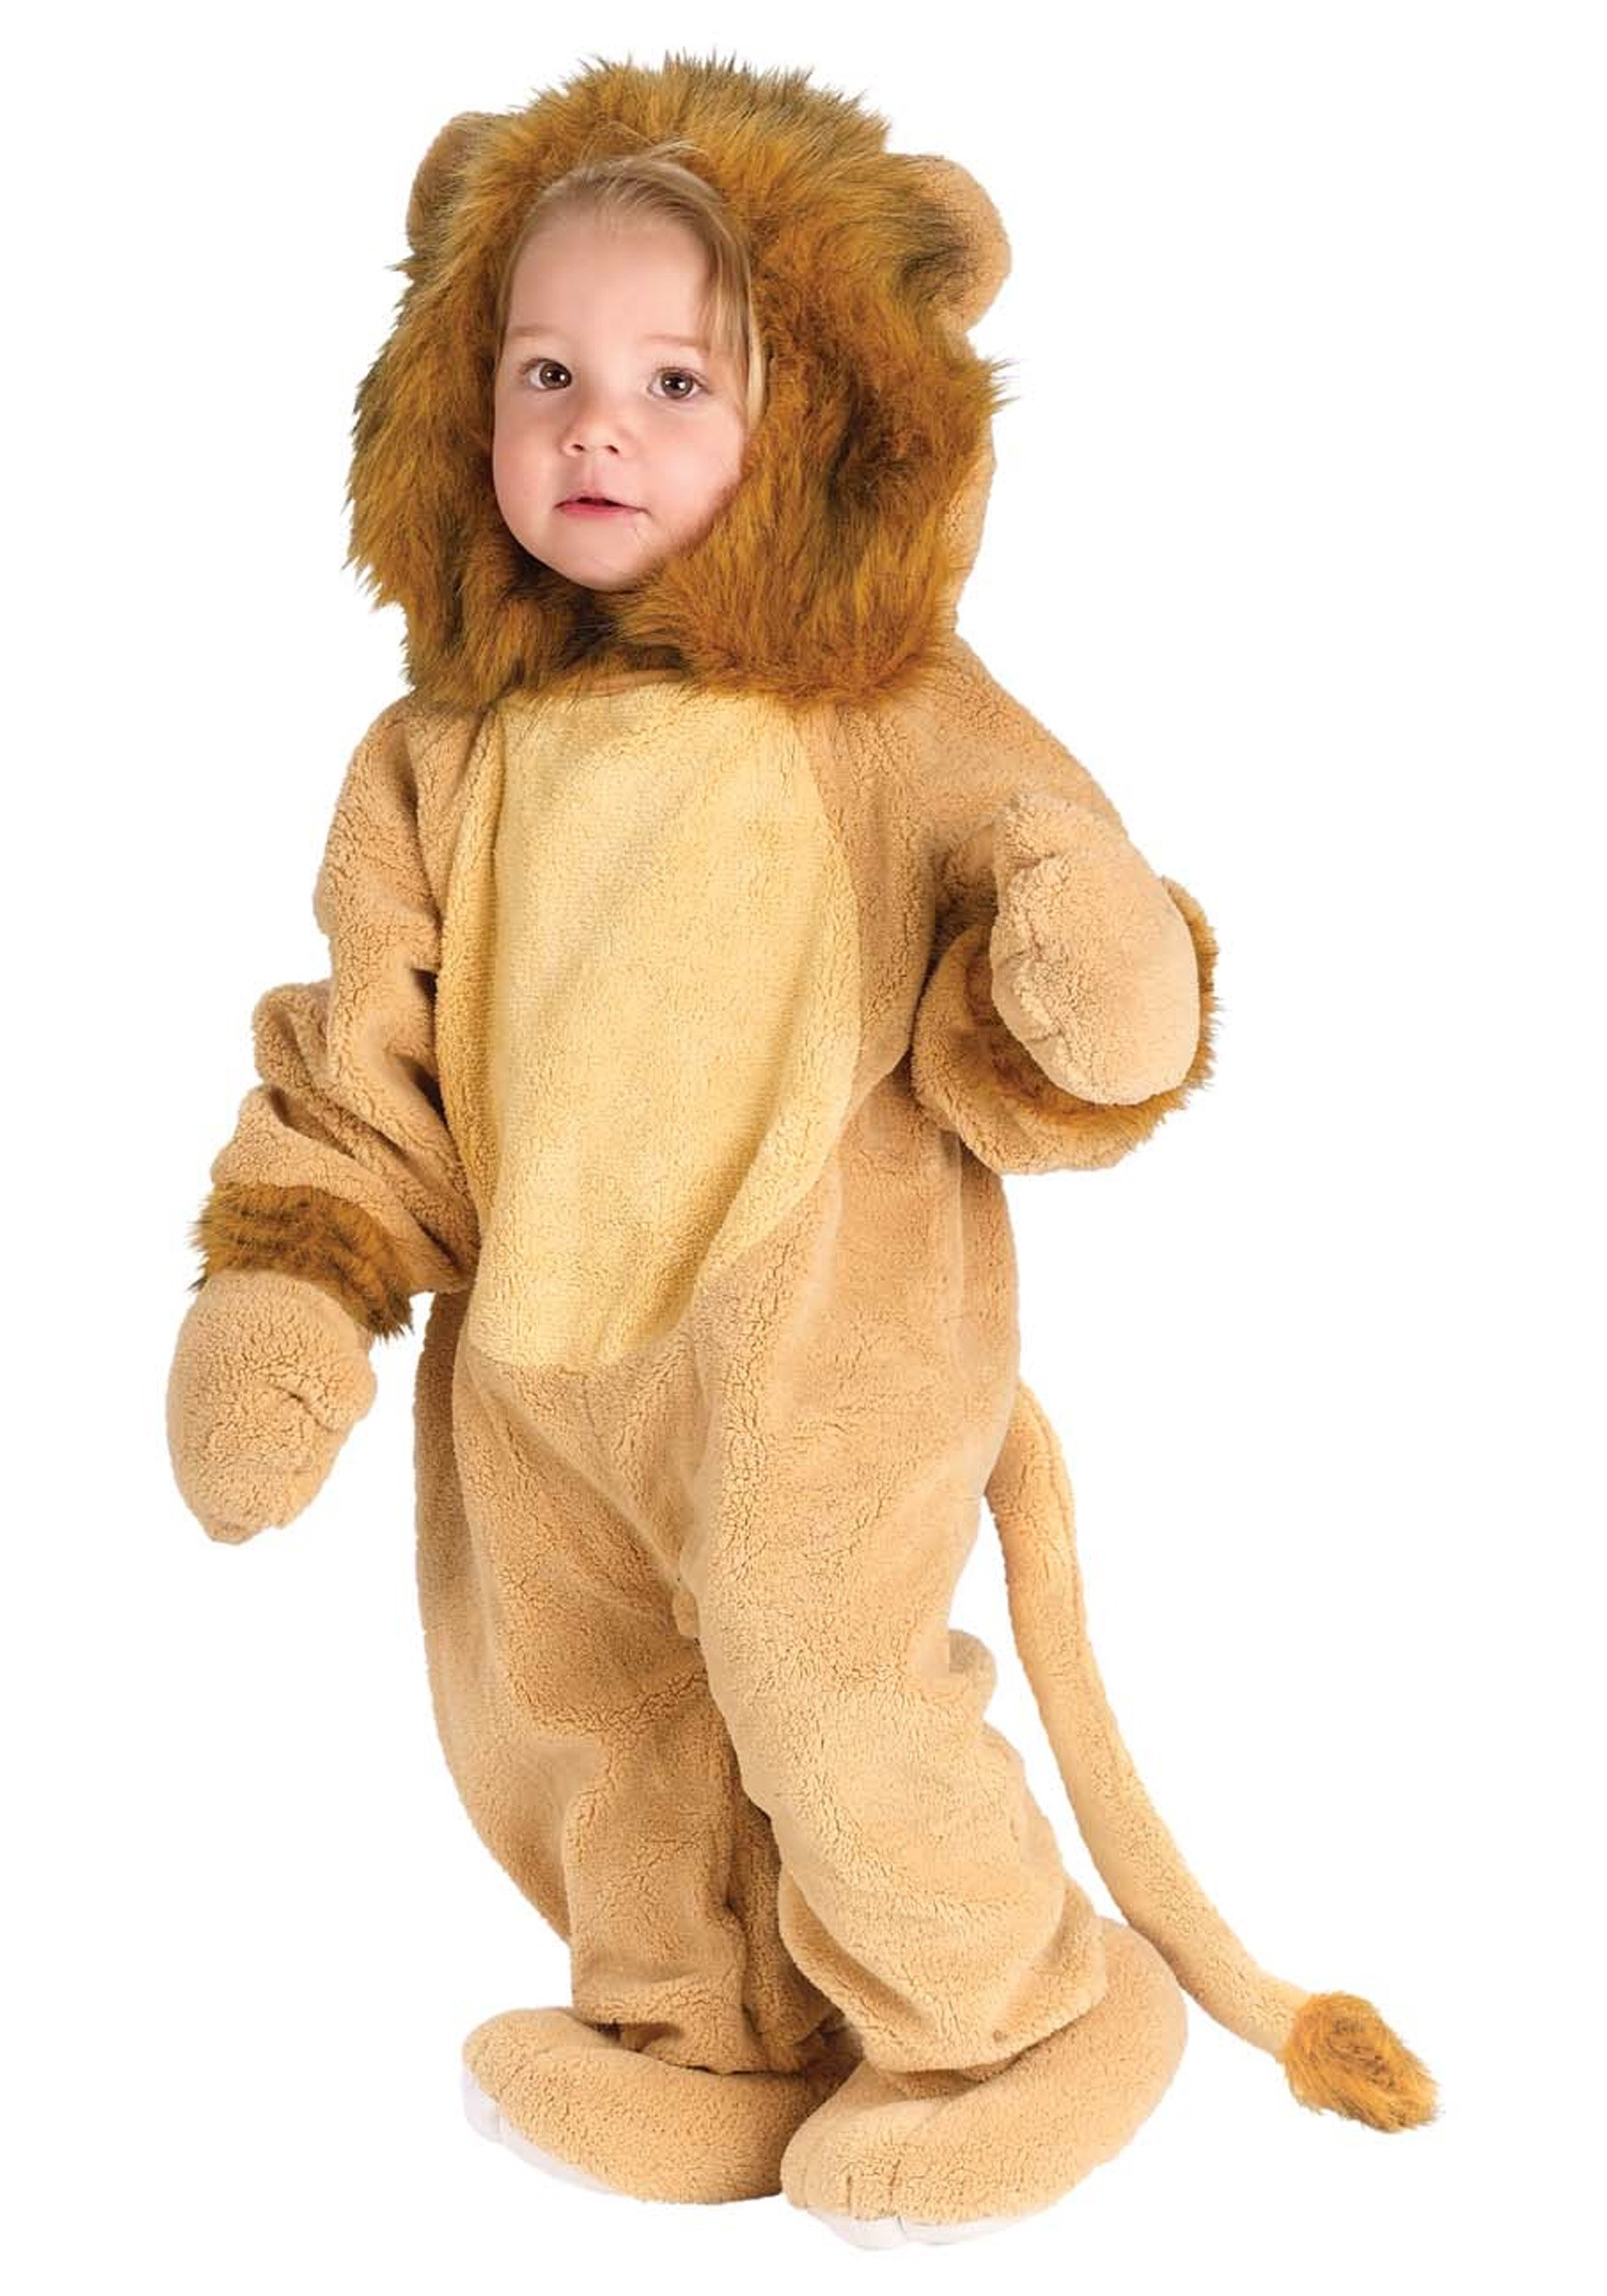 DIY Lion Costume For Toddler  Baby Cuddley Lion Costume